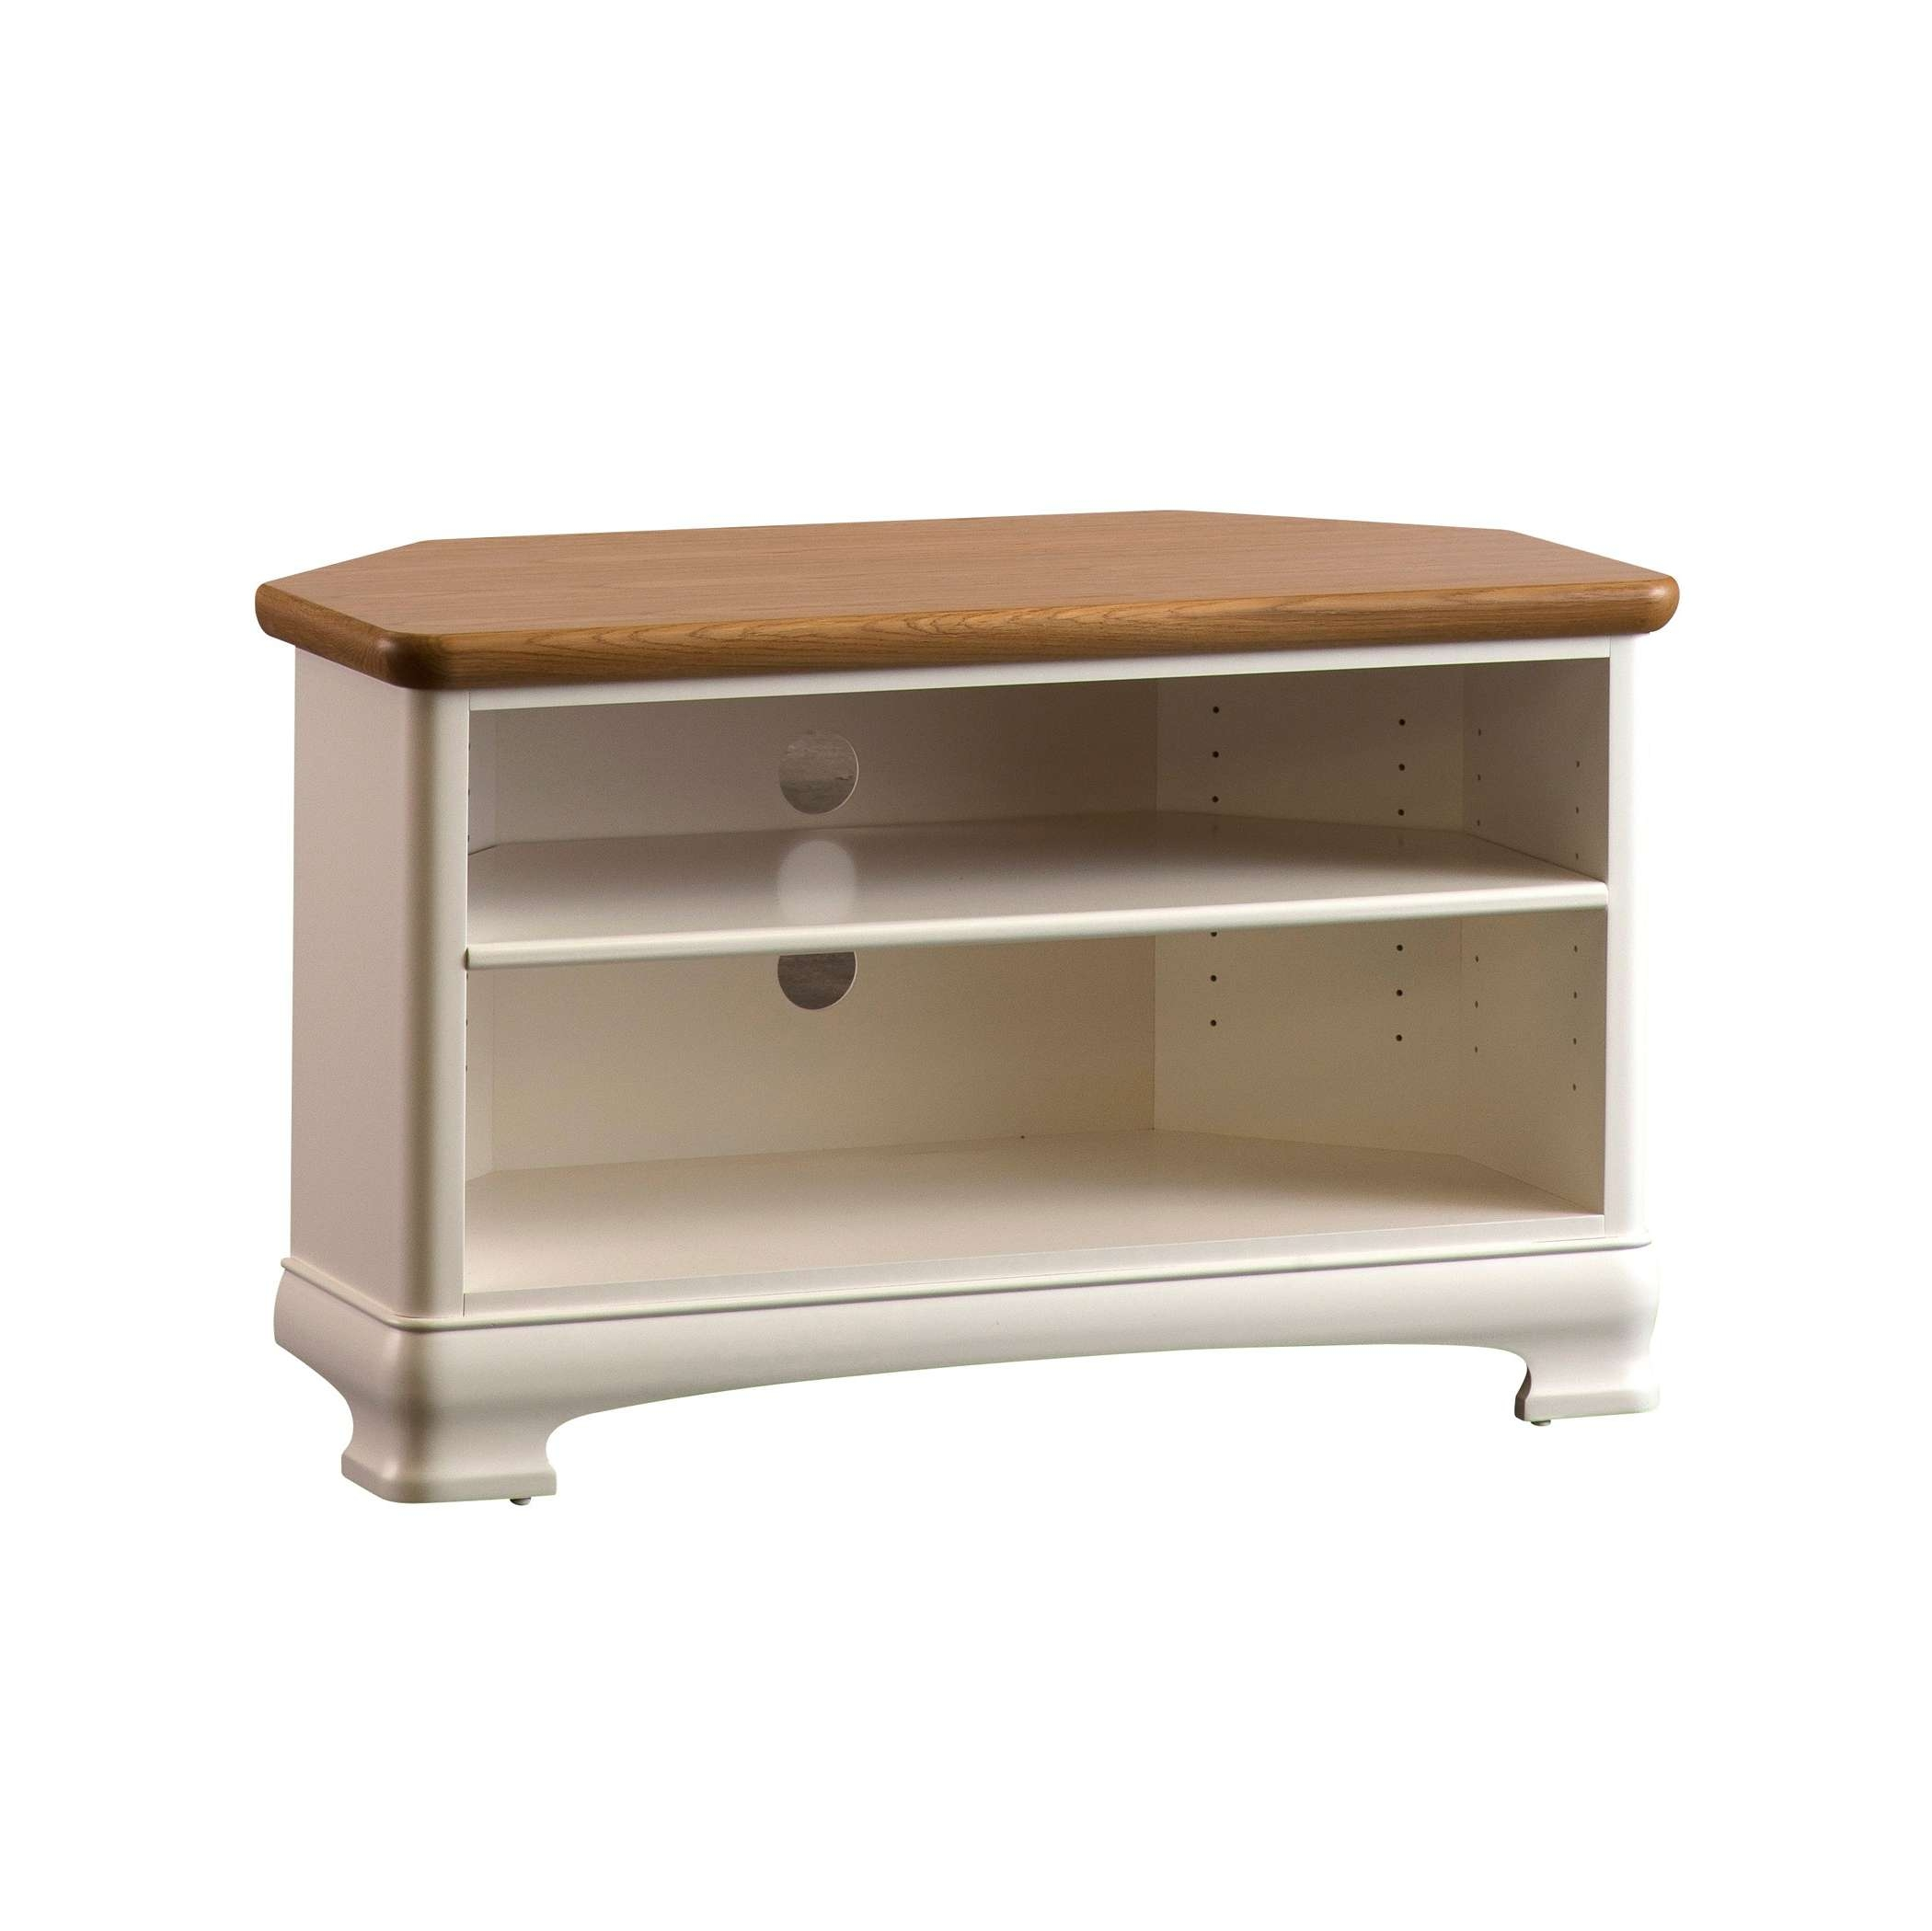 Painted Corner Tv Stand | Gola Furniture Uk For Tv Stands For Corners (View 19 of 20)